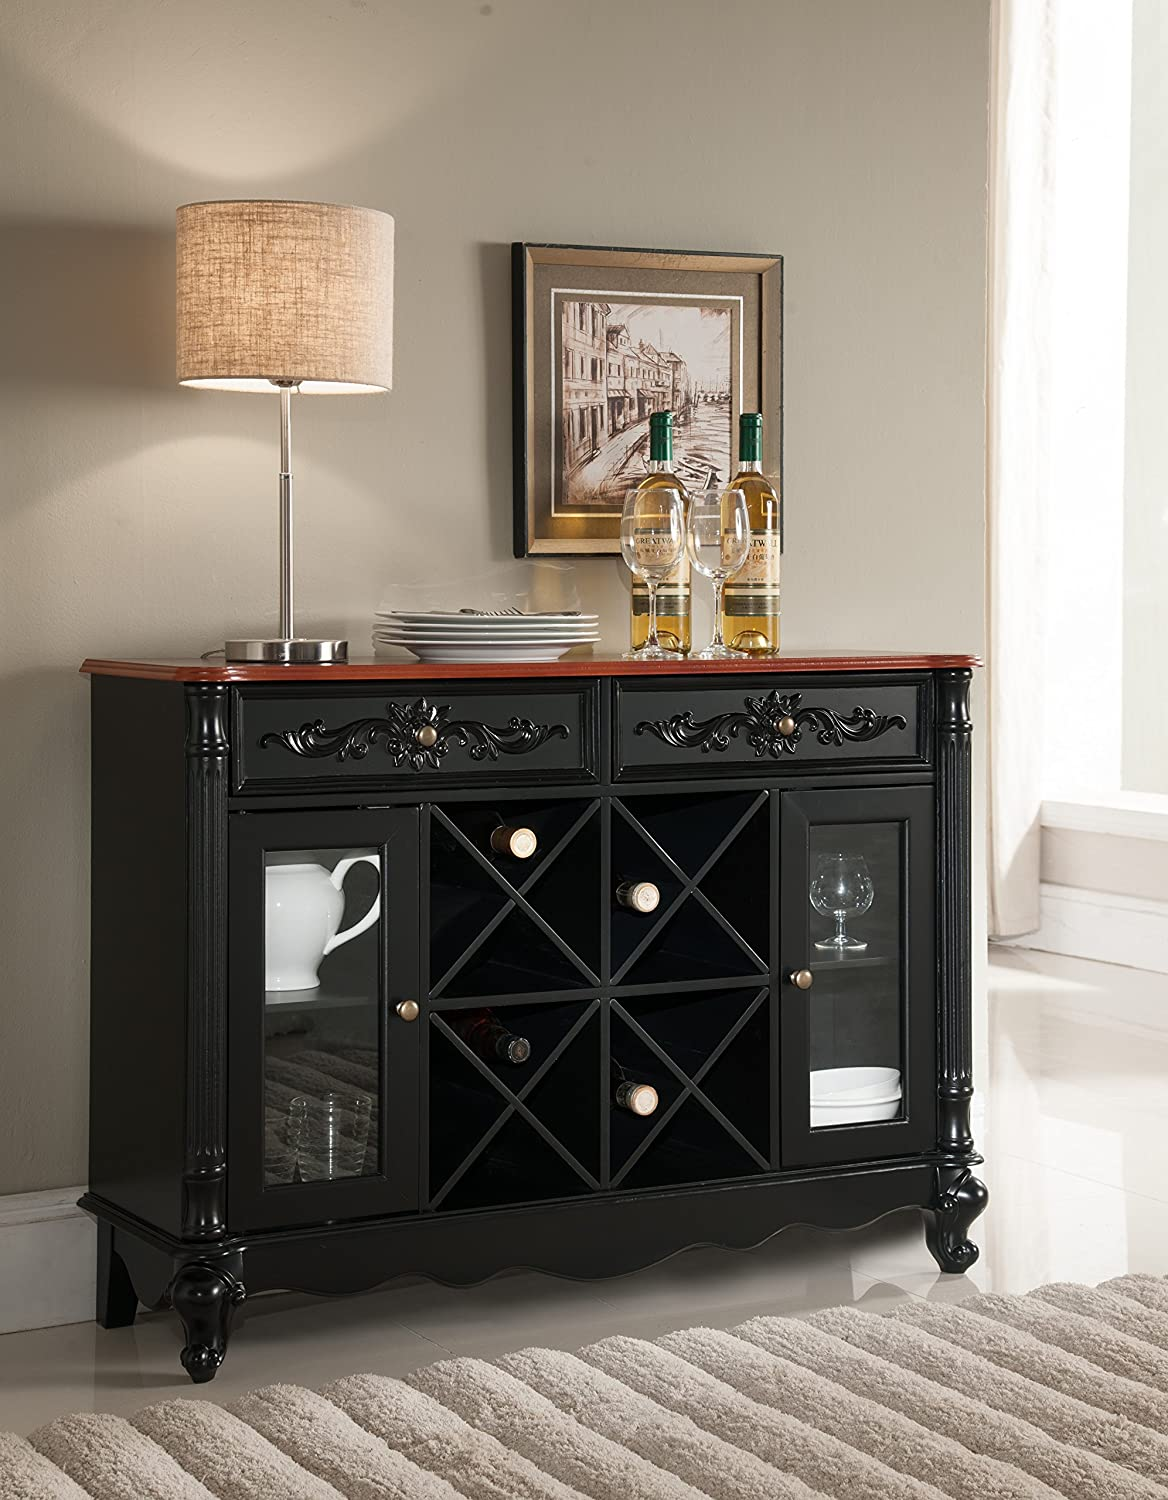 Amazon.com: Kings Brand Buffet Server Wine Cabinet Console Table, Black /  Walnut: Kitchen & Dining - Amazon.com: Kings Brand Buffet Server Wine Cabinet Console Table